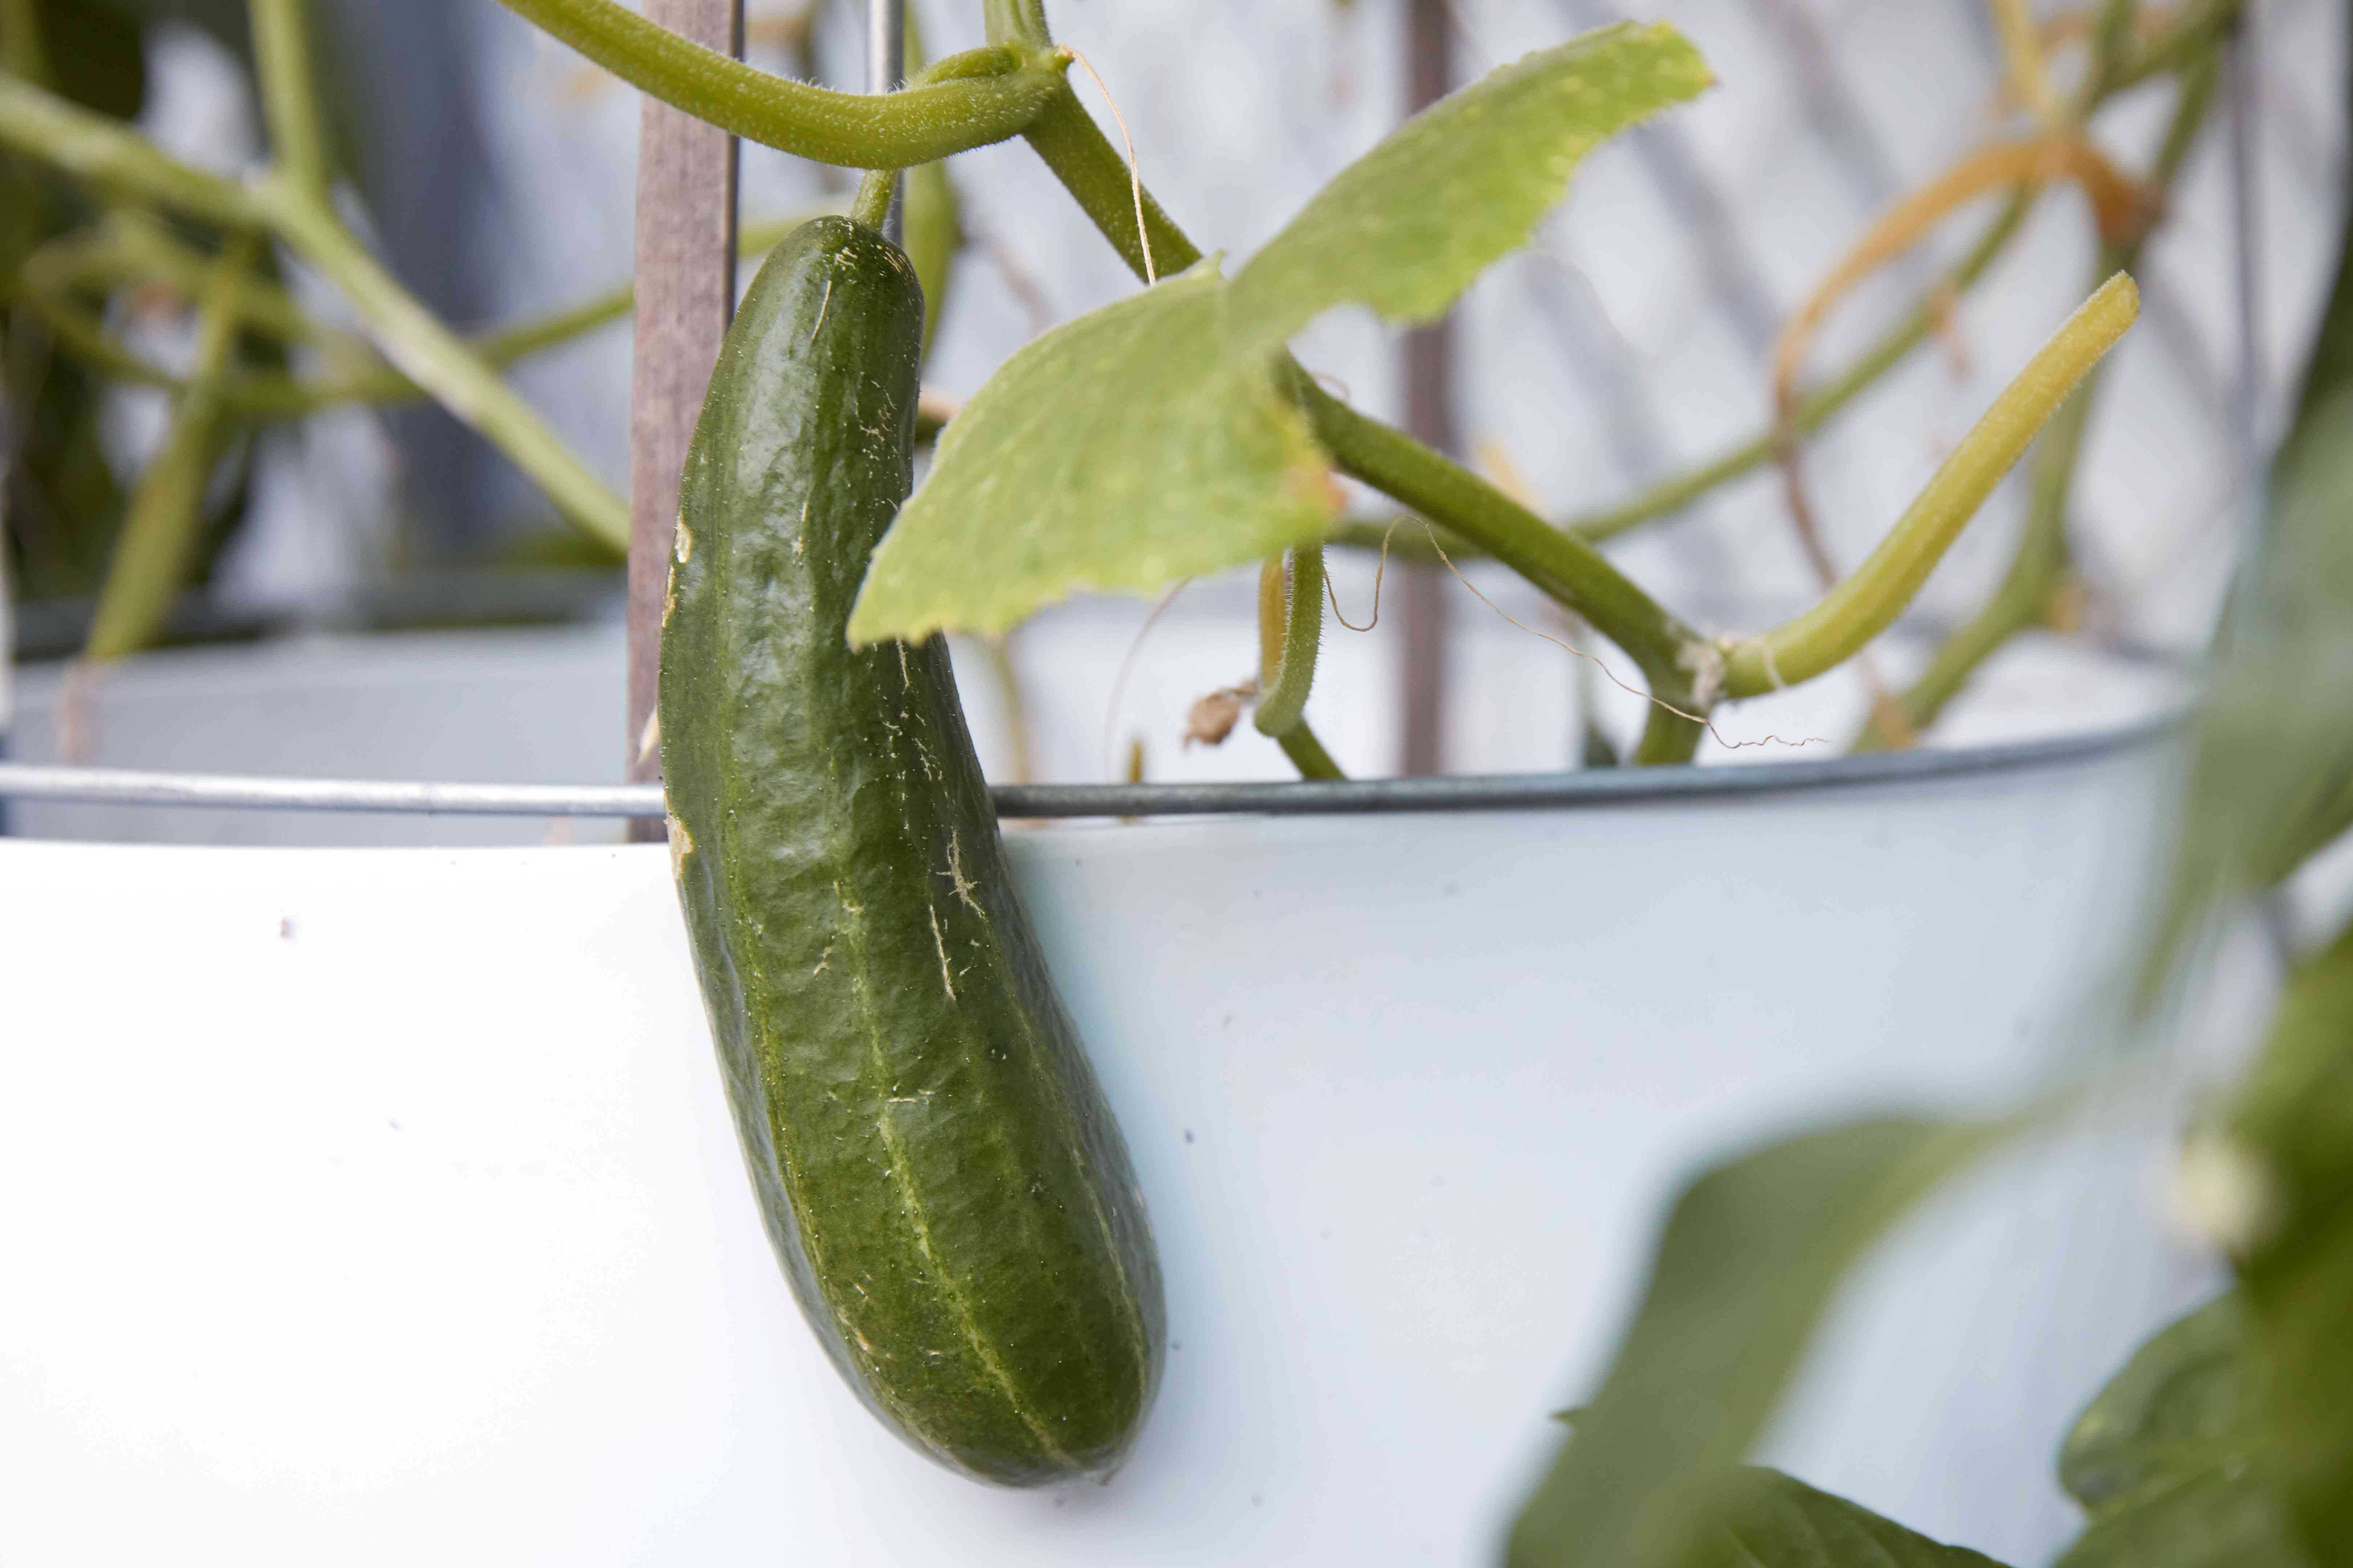 cucumber growing in a container